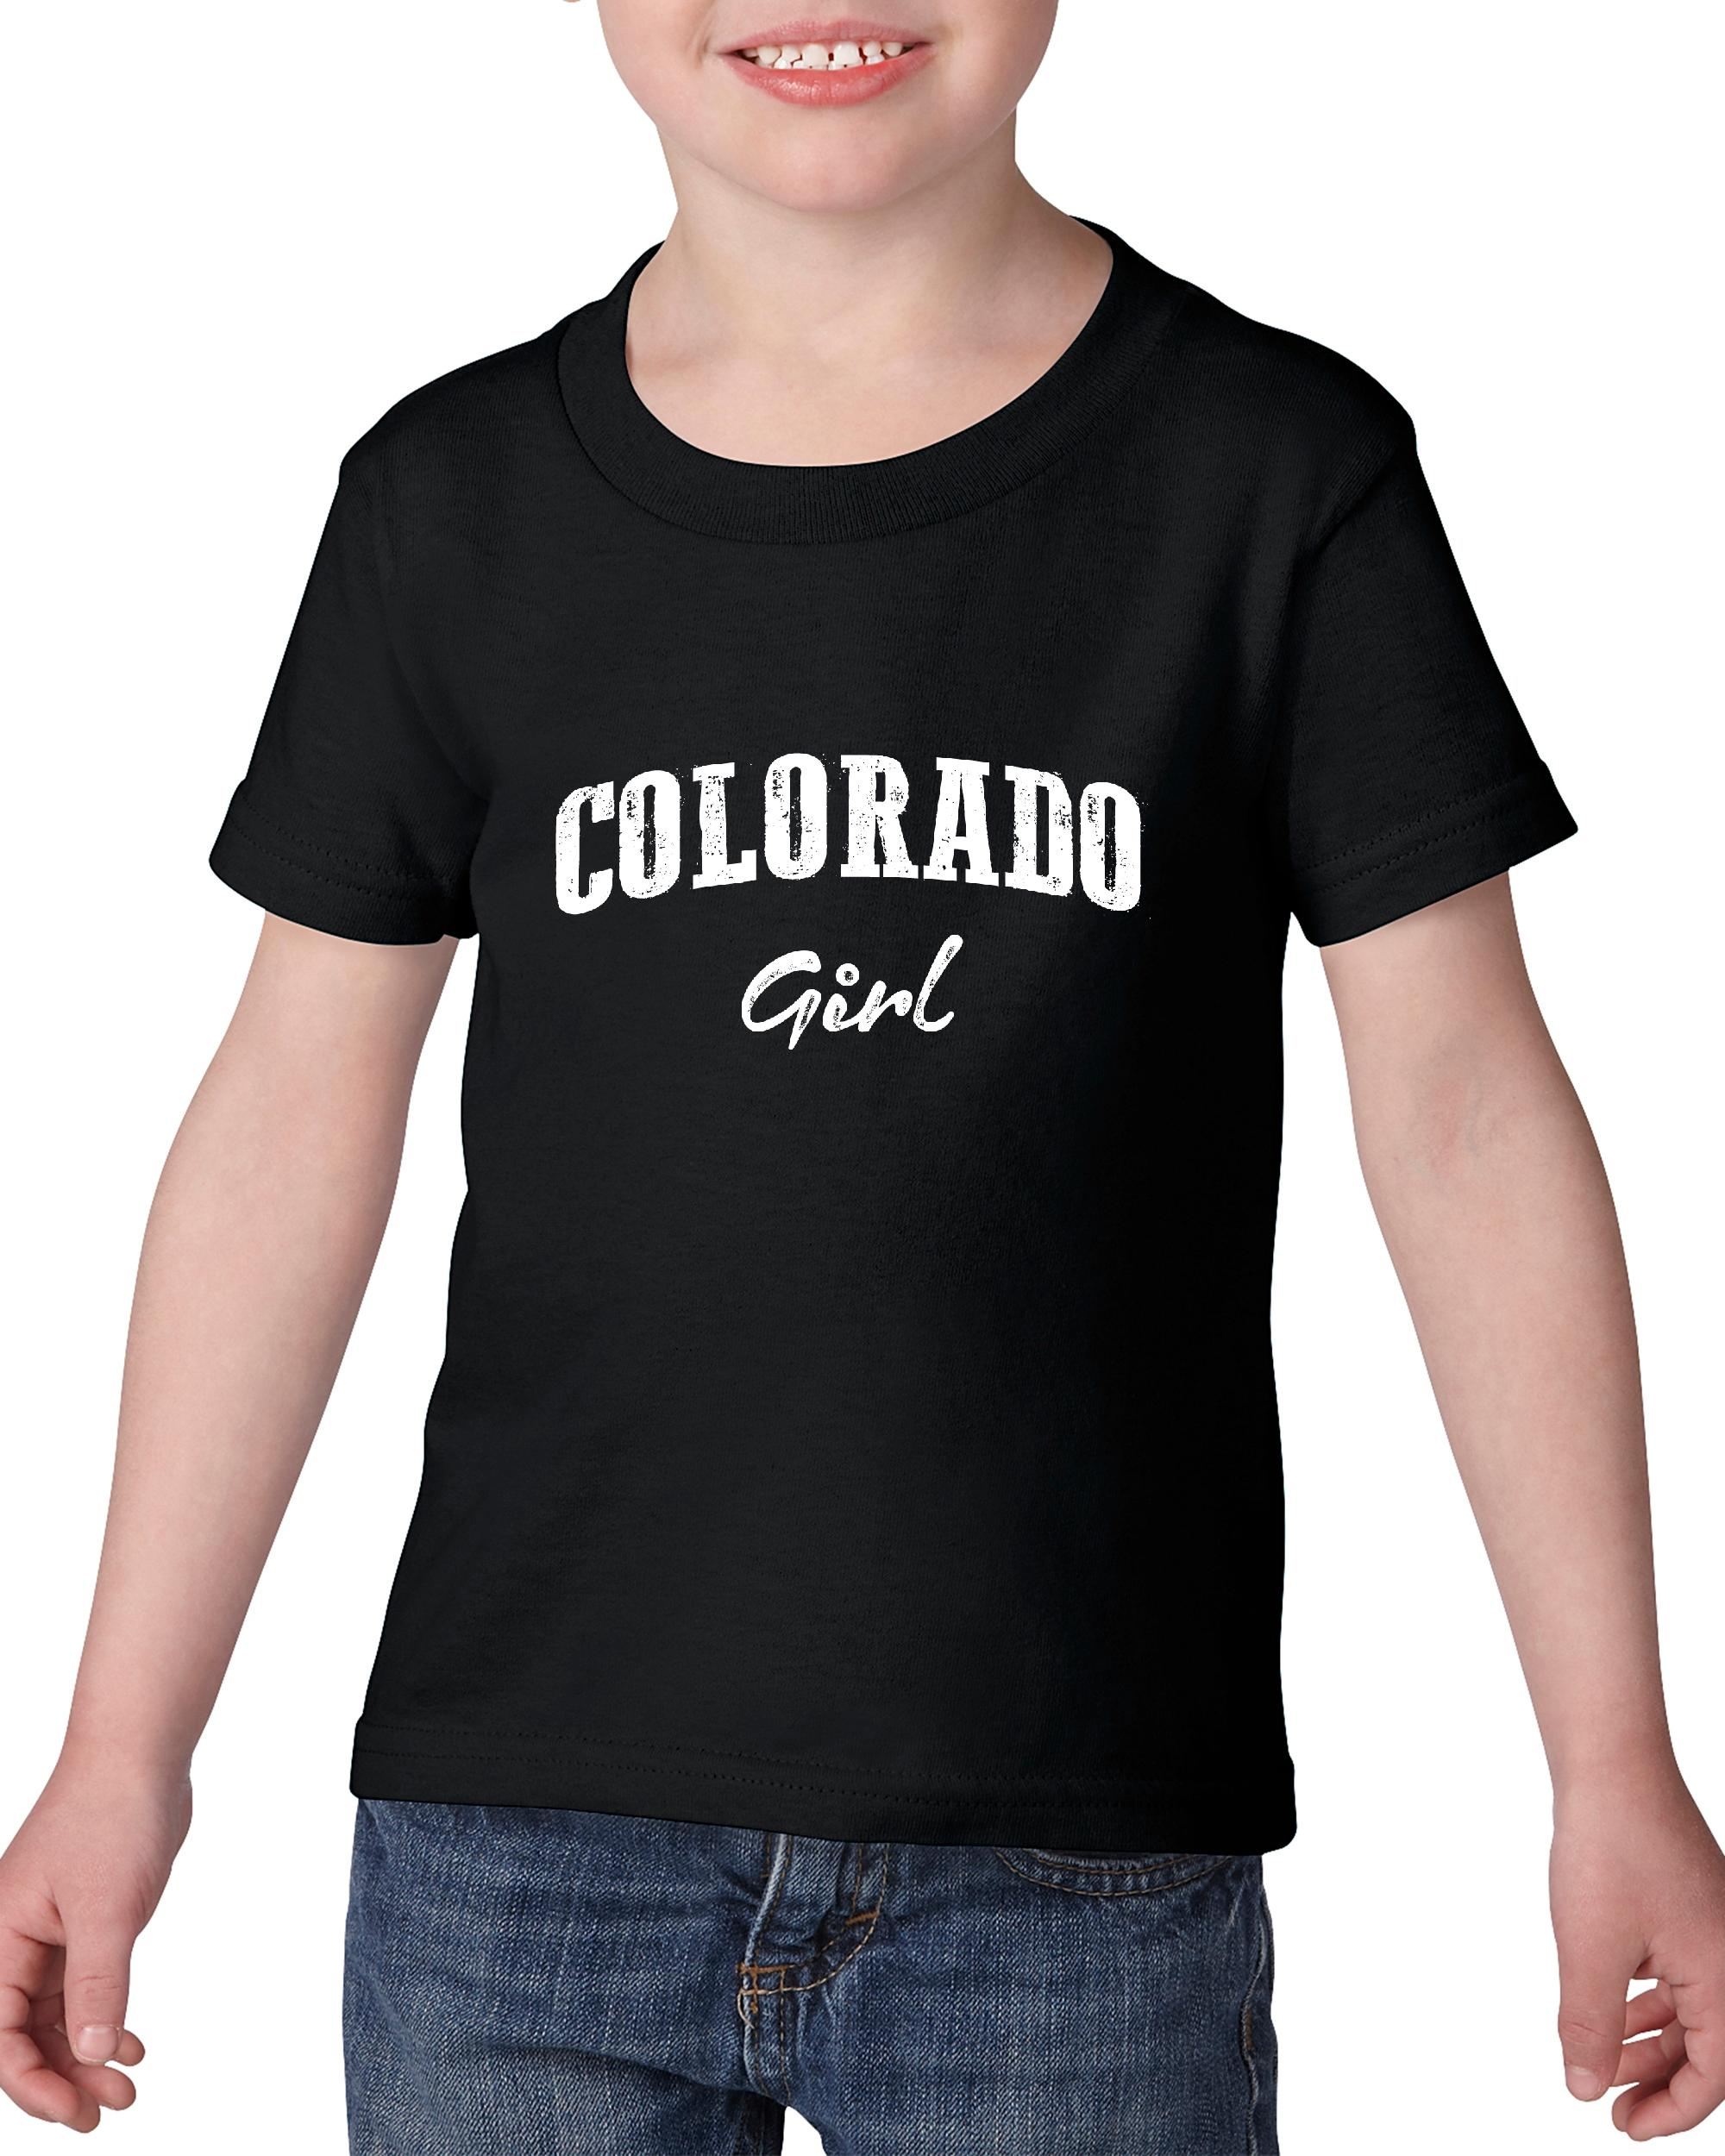 Artix CO Girl Home of CU Denver Boulder UCCS University of Colorado Springs Map Flag Heavy Cotton Toddler Kids T-Shirt Tee Clothing